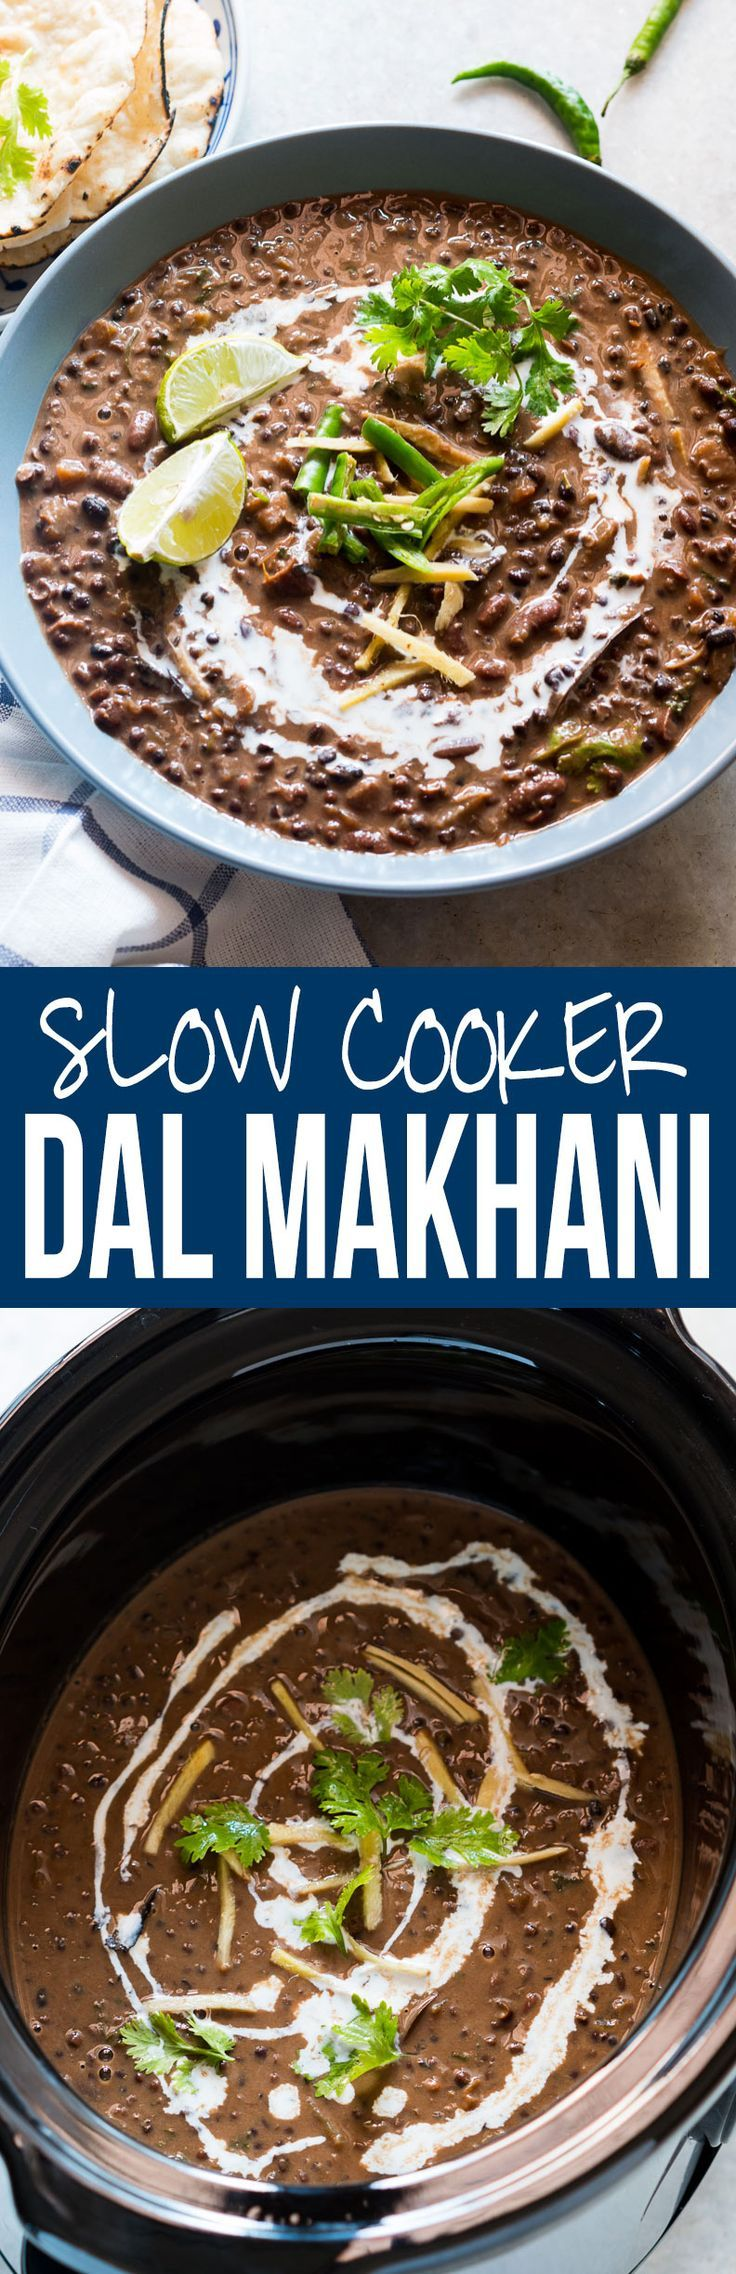 Easy, slow cooker dal makhani recipe, cooked in a crockpot and is just like restaurants & dhabas. This black dal is great with rice & rotis! via @my_foodstory